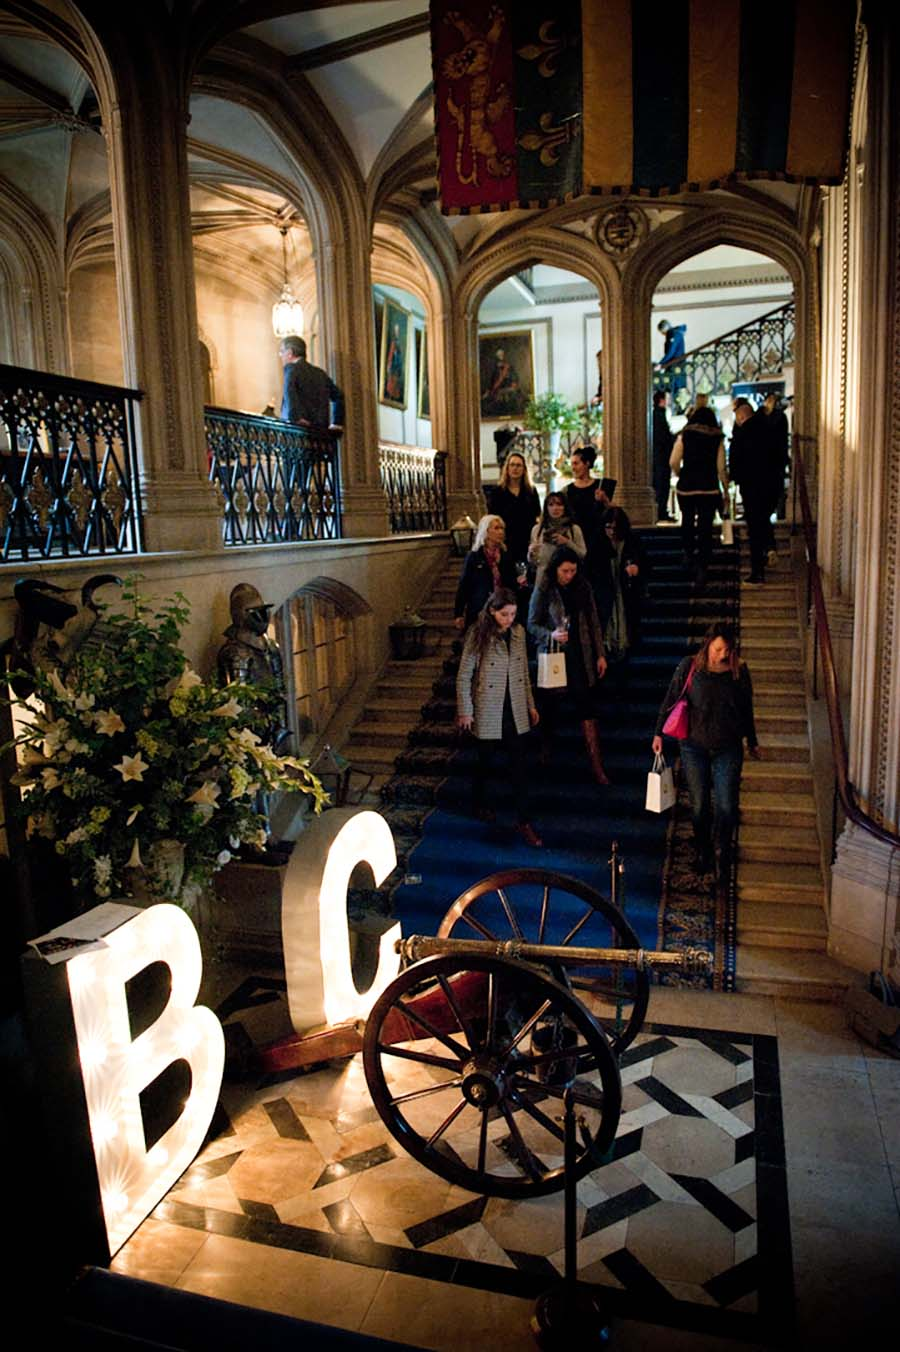 Buckinghams-at-belvoir-castle-wedding-fair-rachael-connerton-photography-75